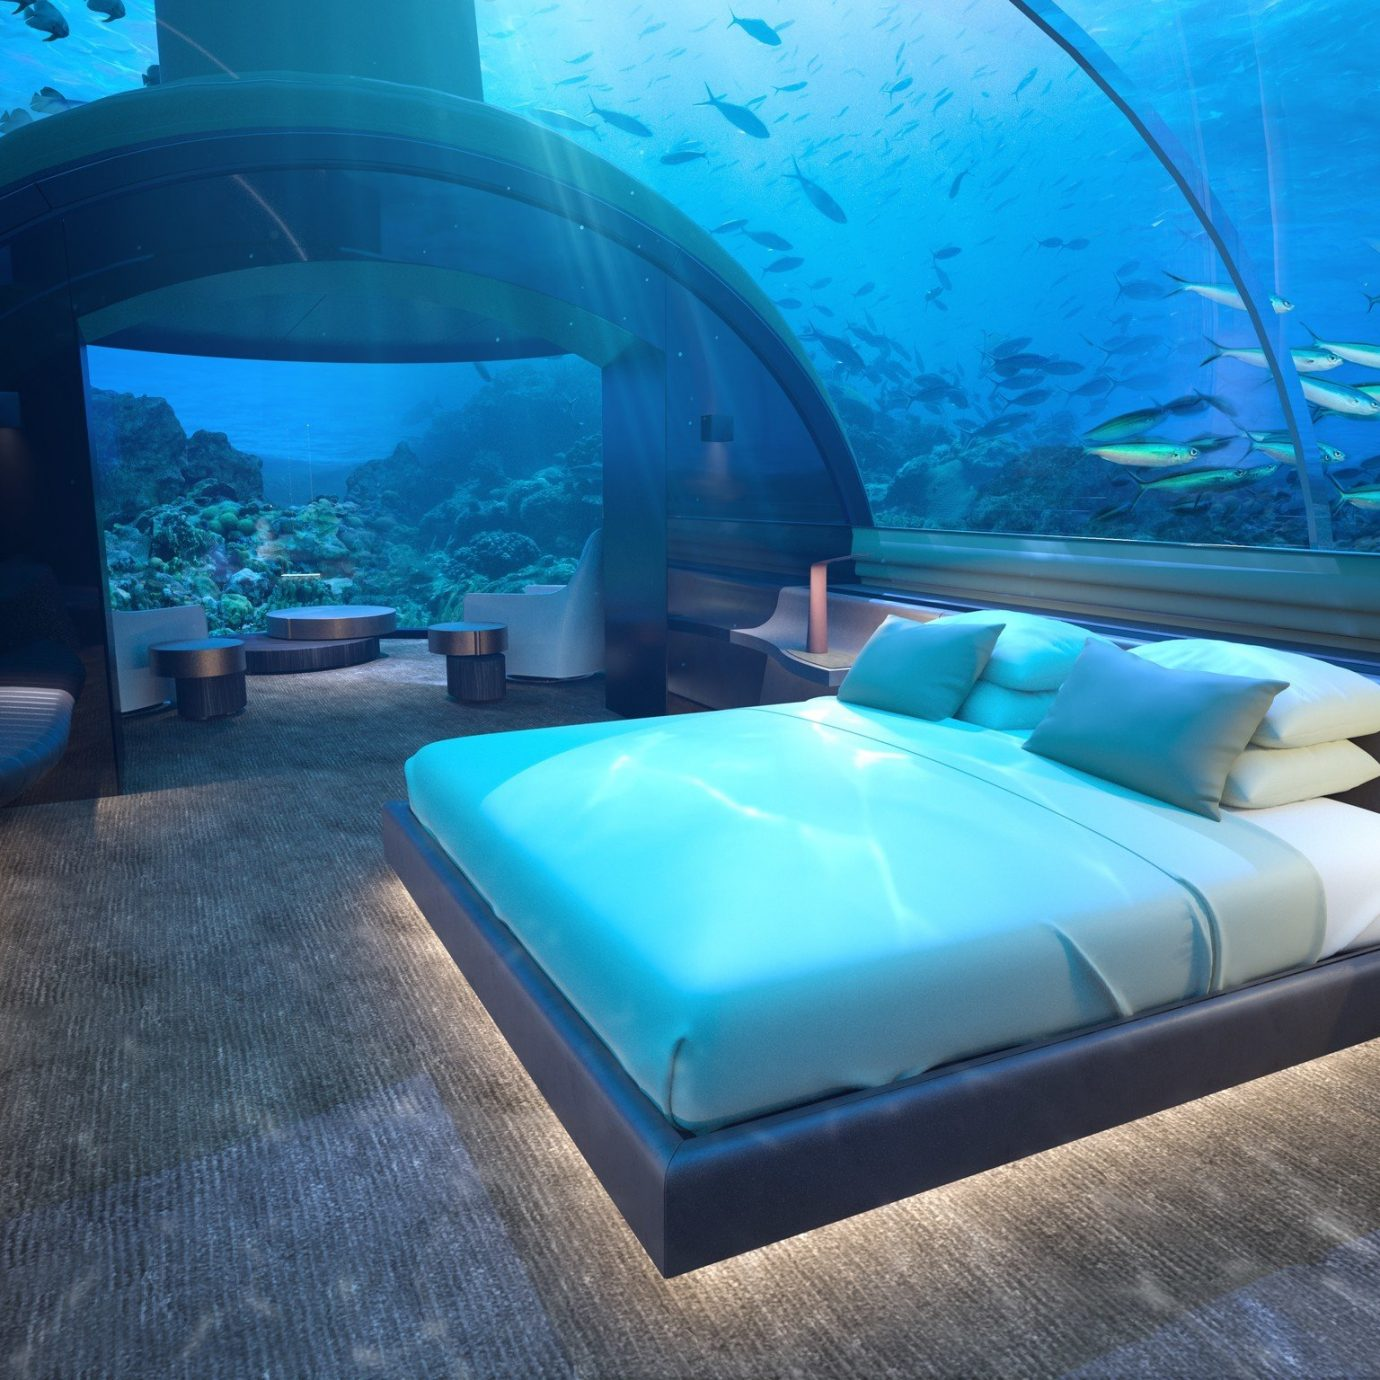 asia Beach Hotels Islands Maldives News blue underwater marine biology aquarium interior design